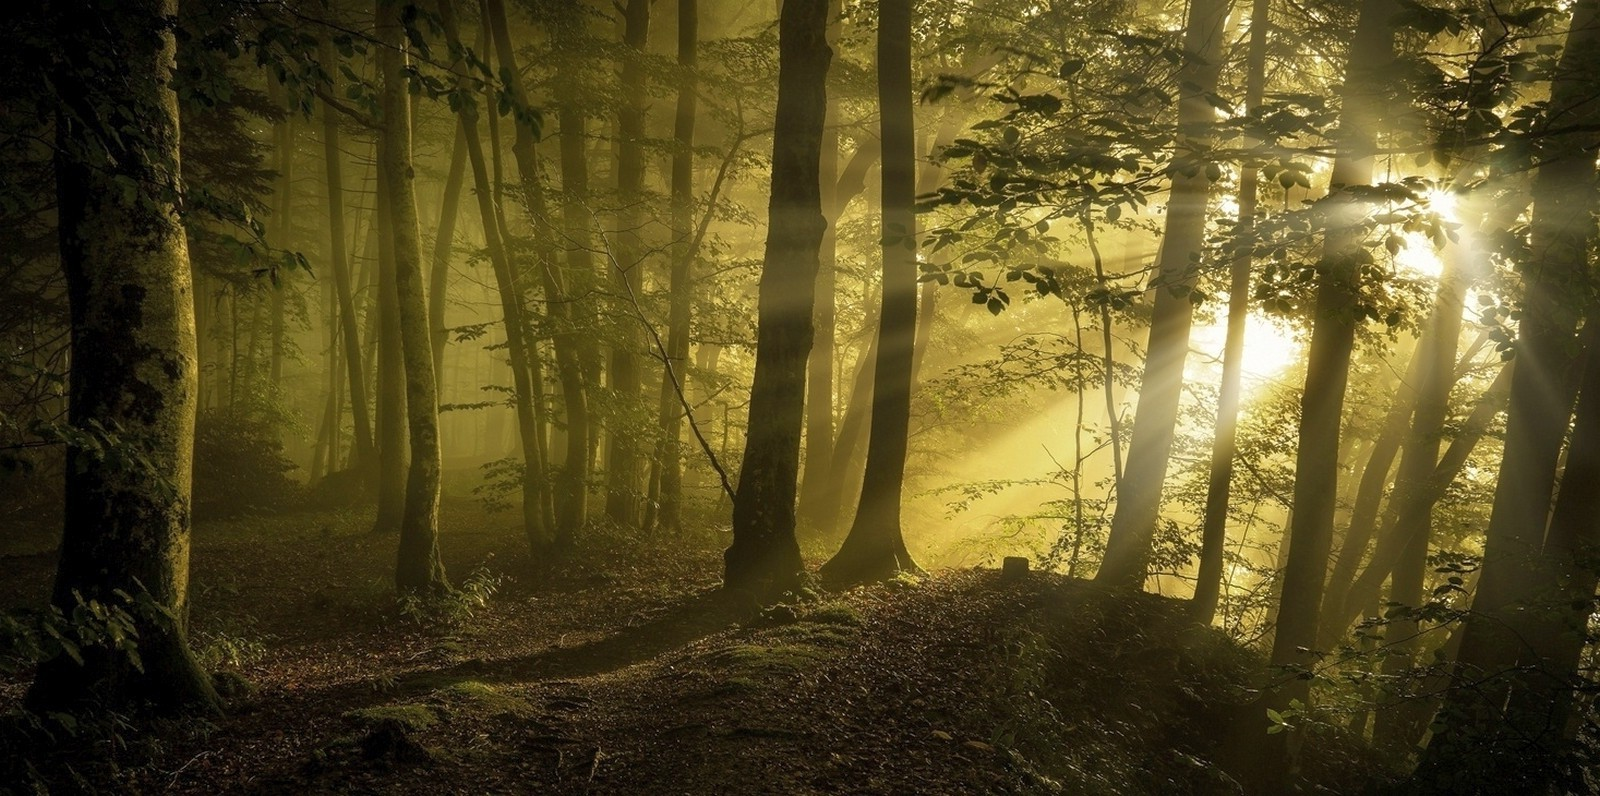 Fantasy Girl Wallpaper Full Hd Sunrise Sunbeams Forest Path Trees Mist Sunlight